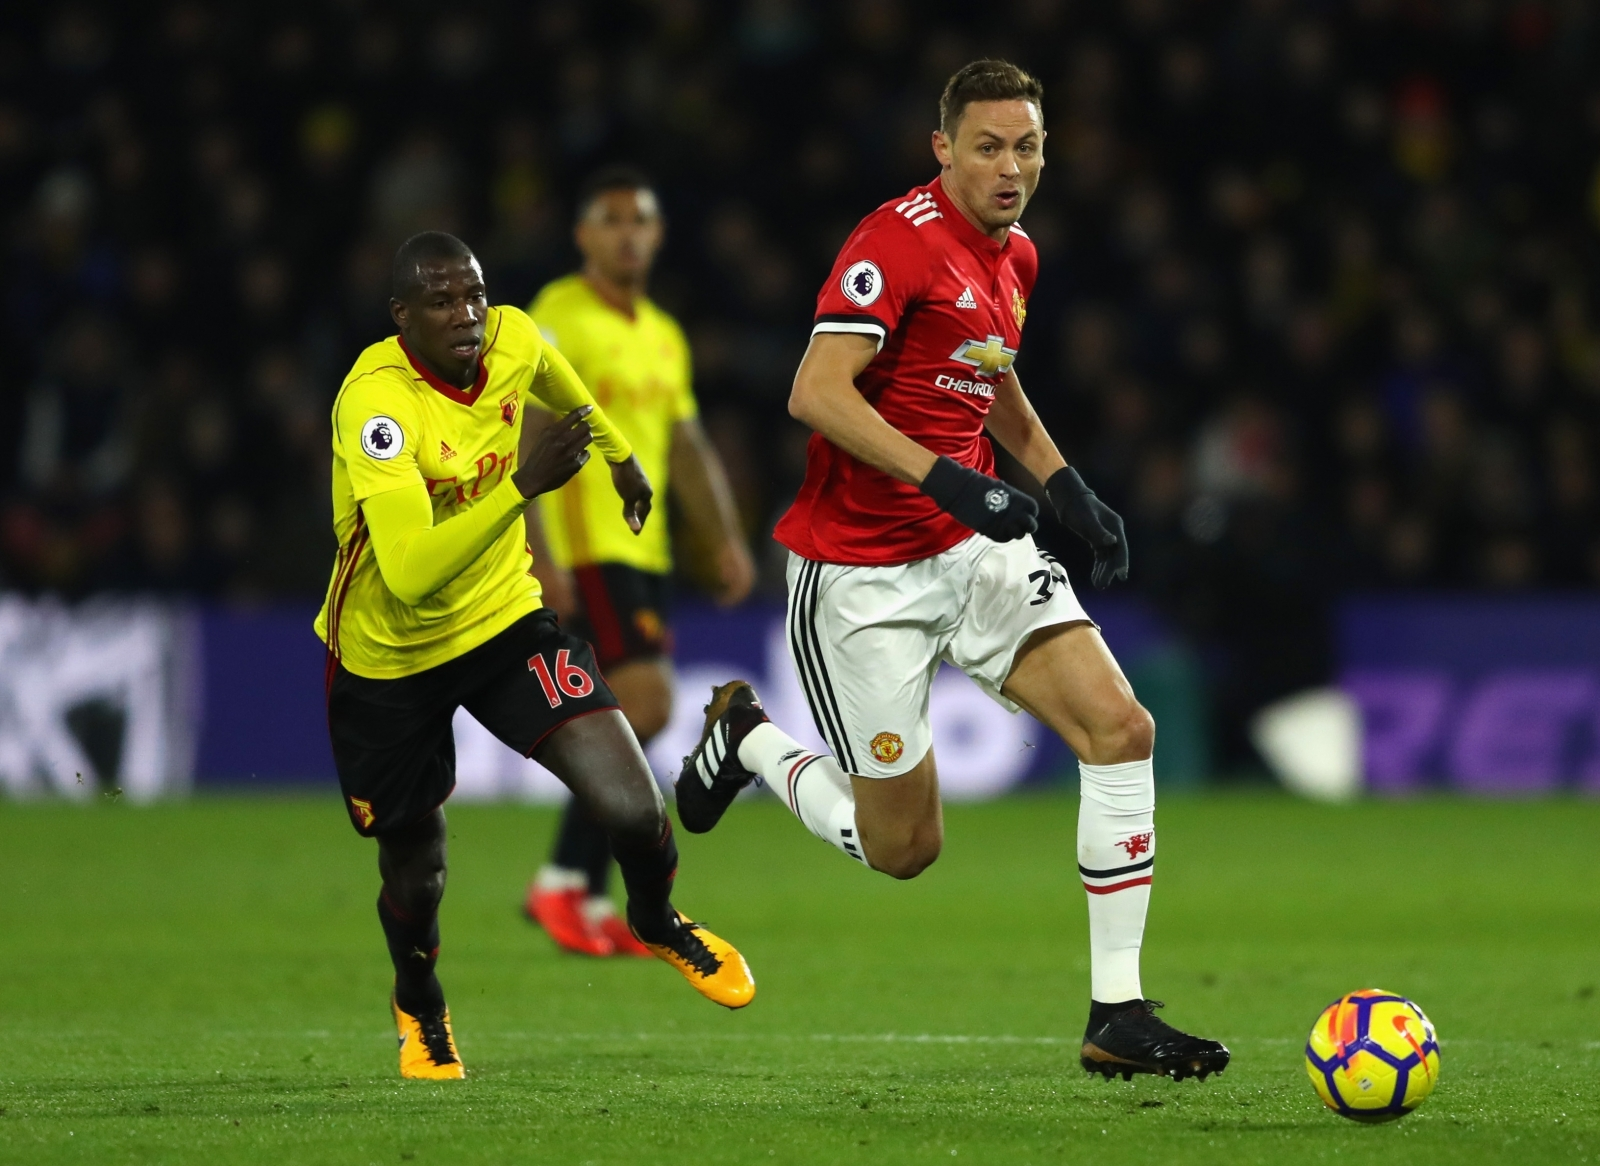 Manchester United midfielder Nemanja Matic a doubt for Arsenal game